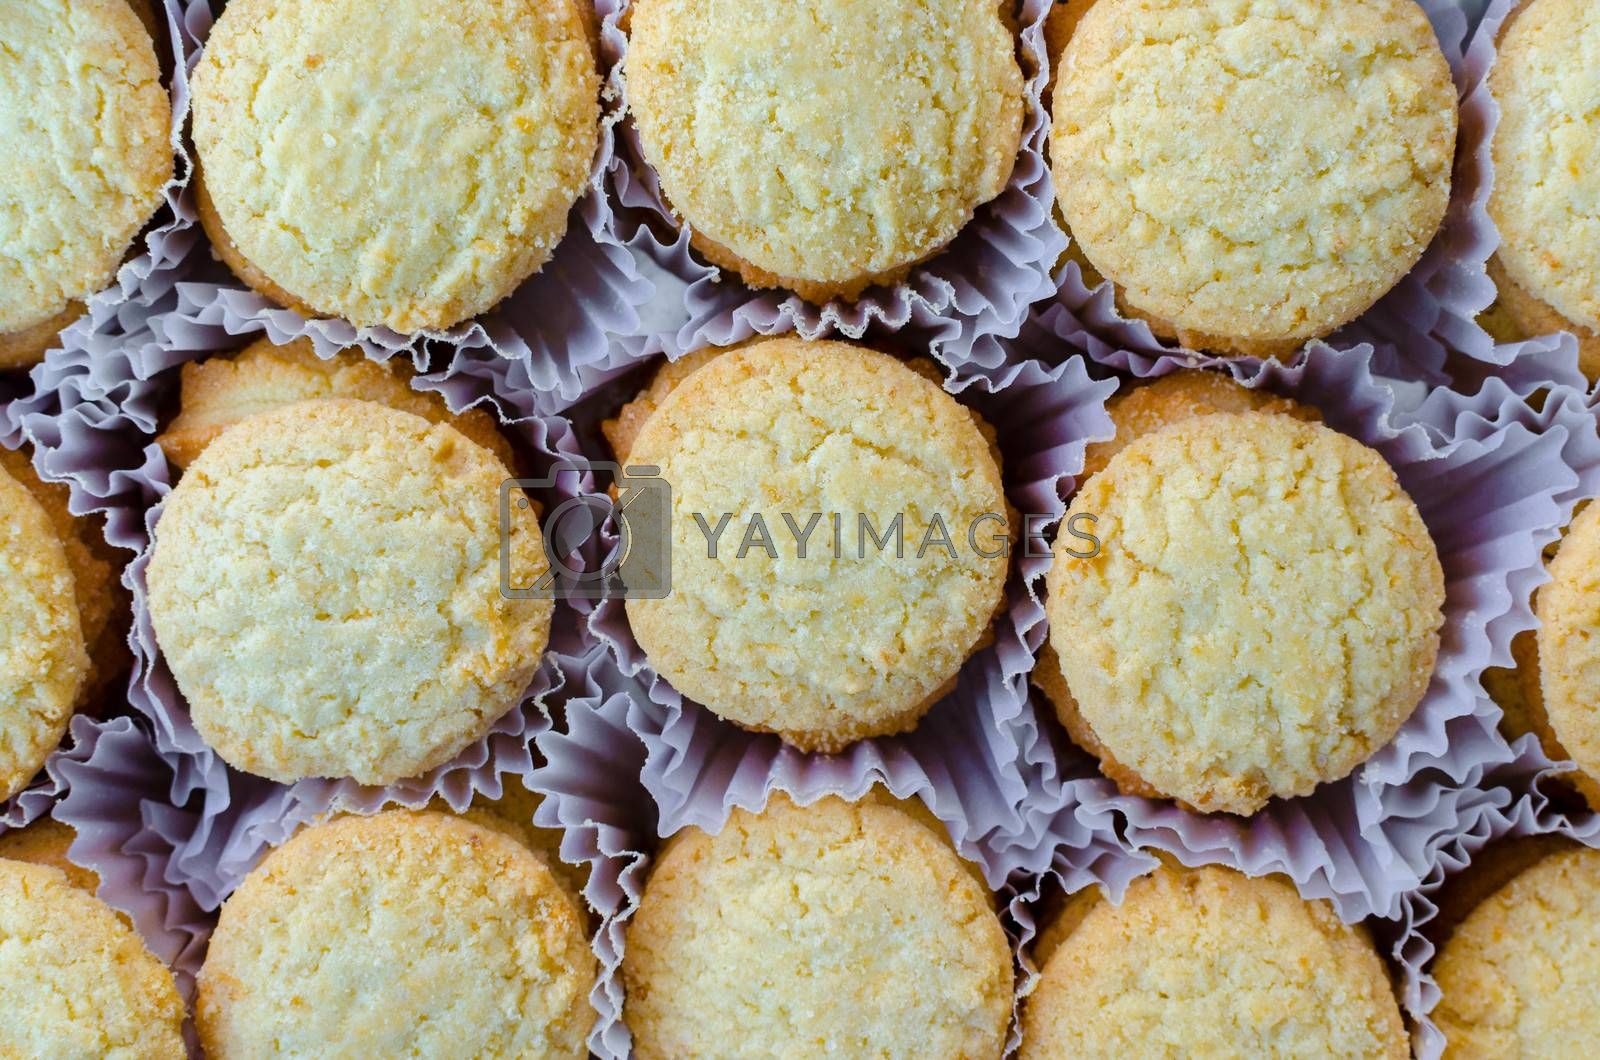 Royalty free image of Rows of Cookies in Container by finallast